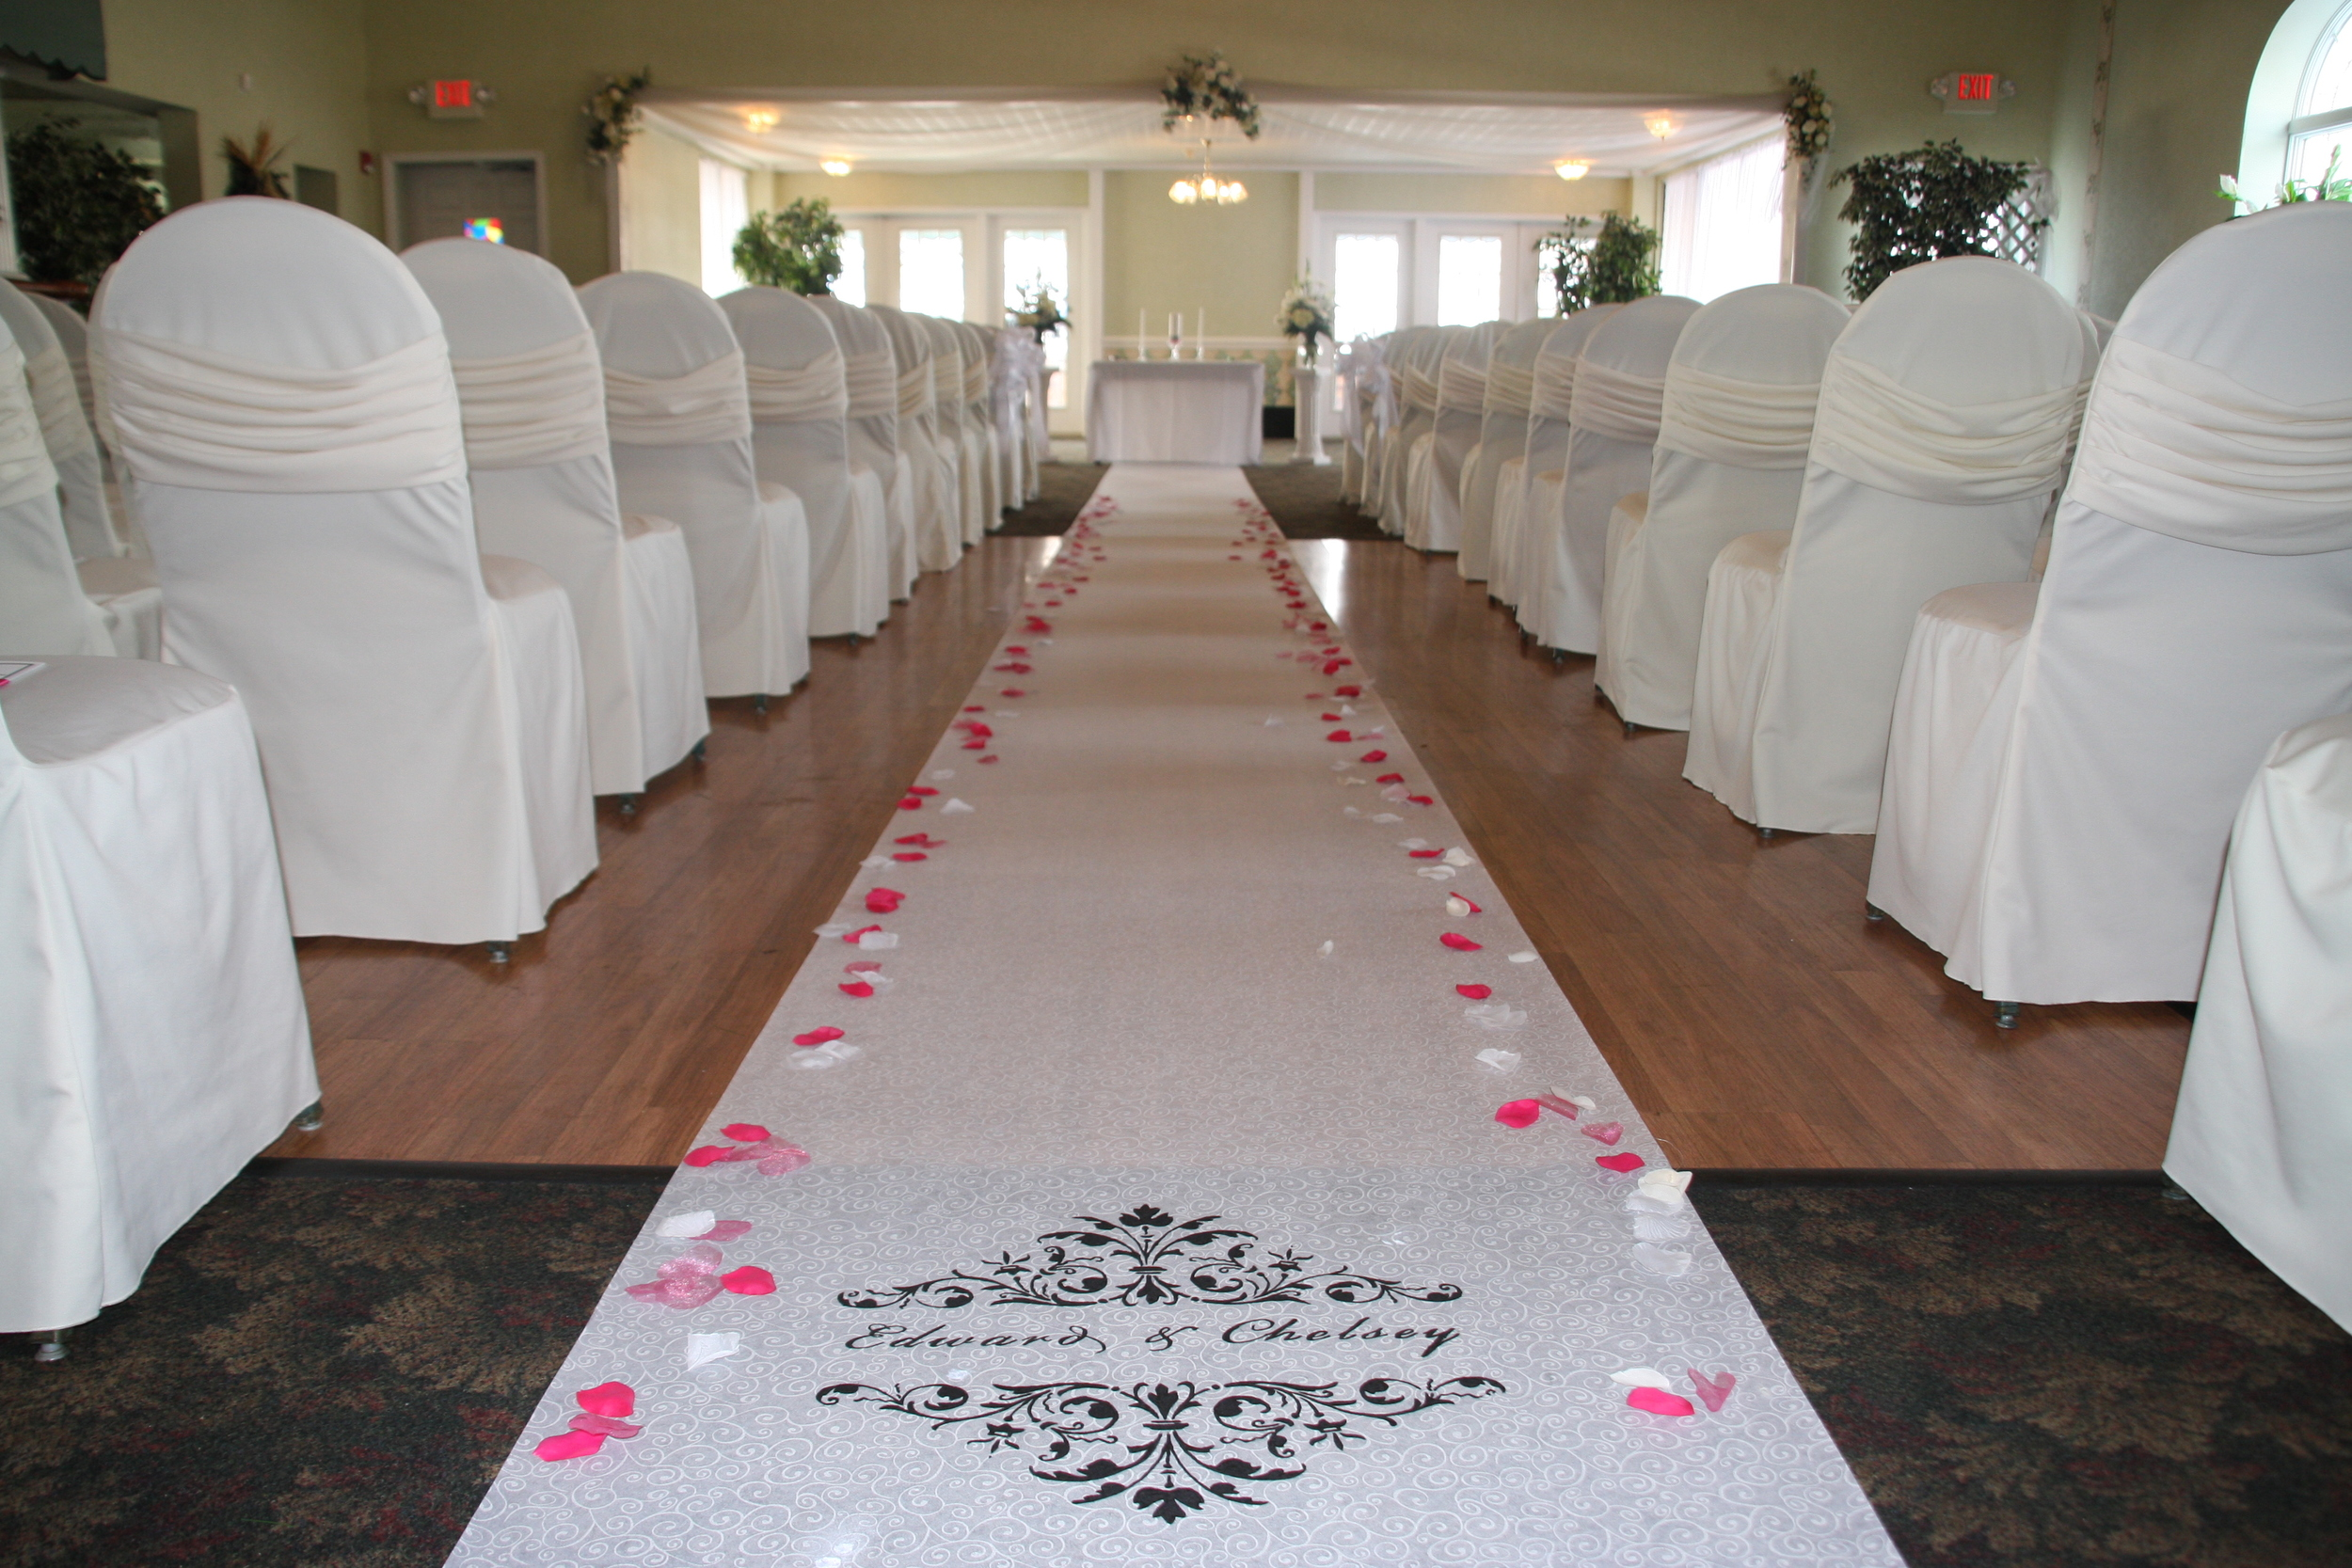 Chairs & Aisle inn Wedding Venue, Buffalo NY